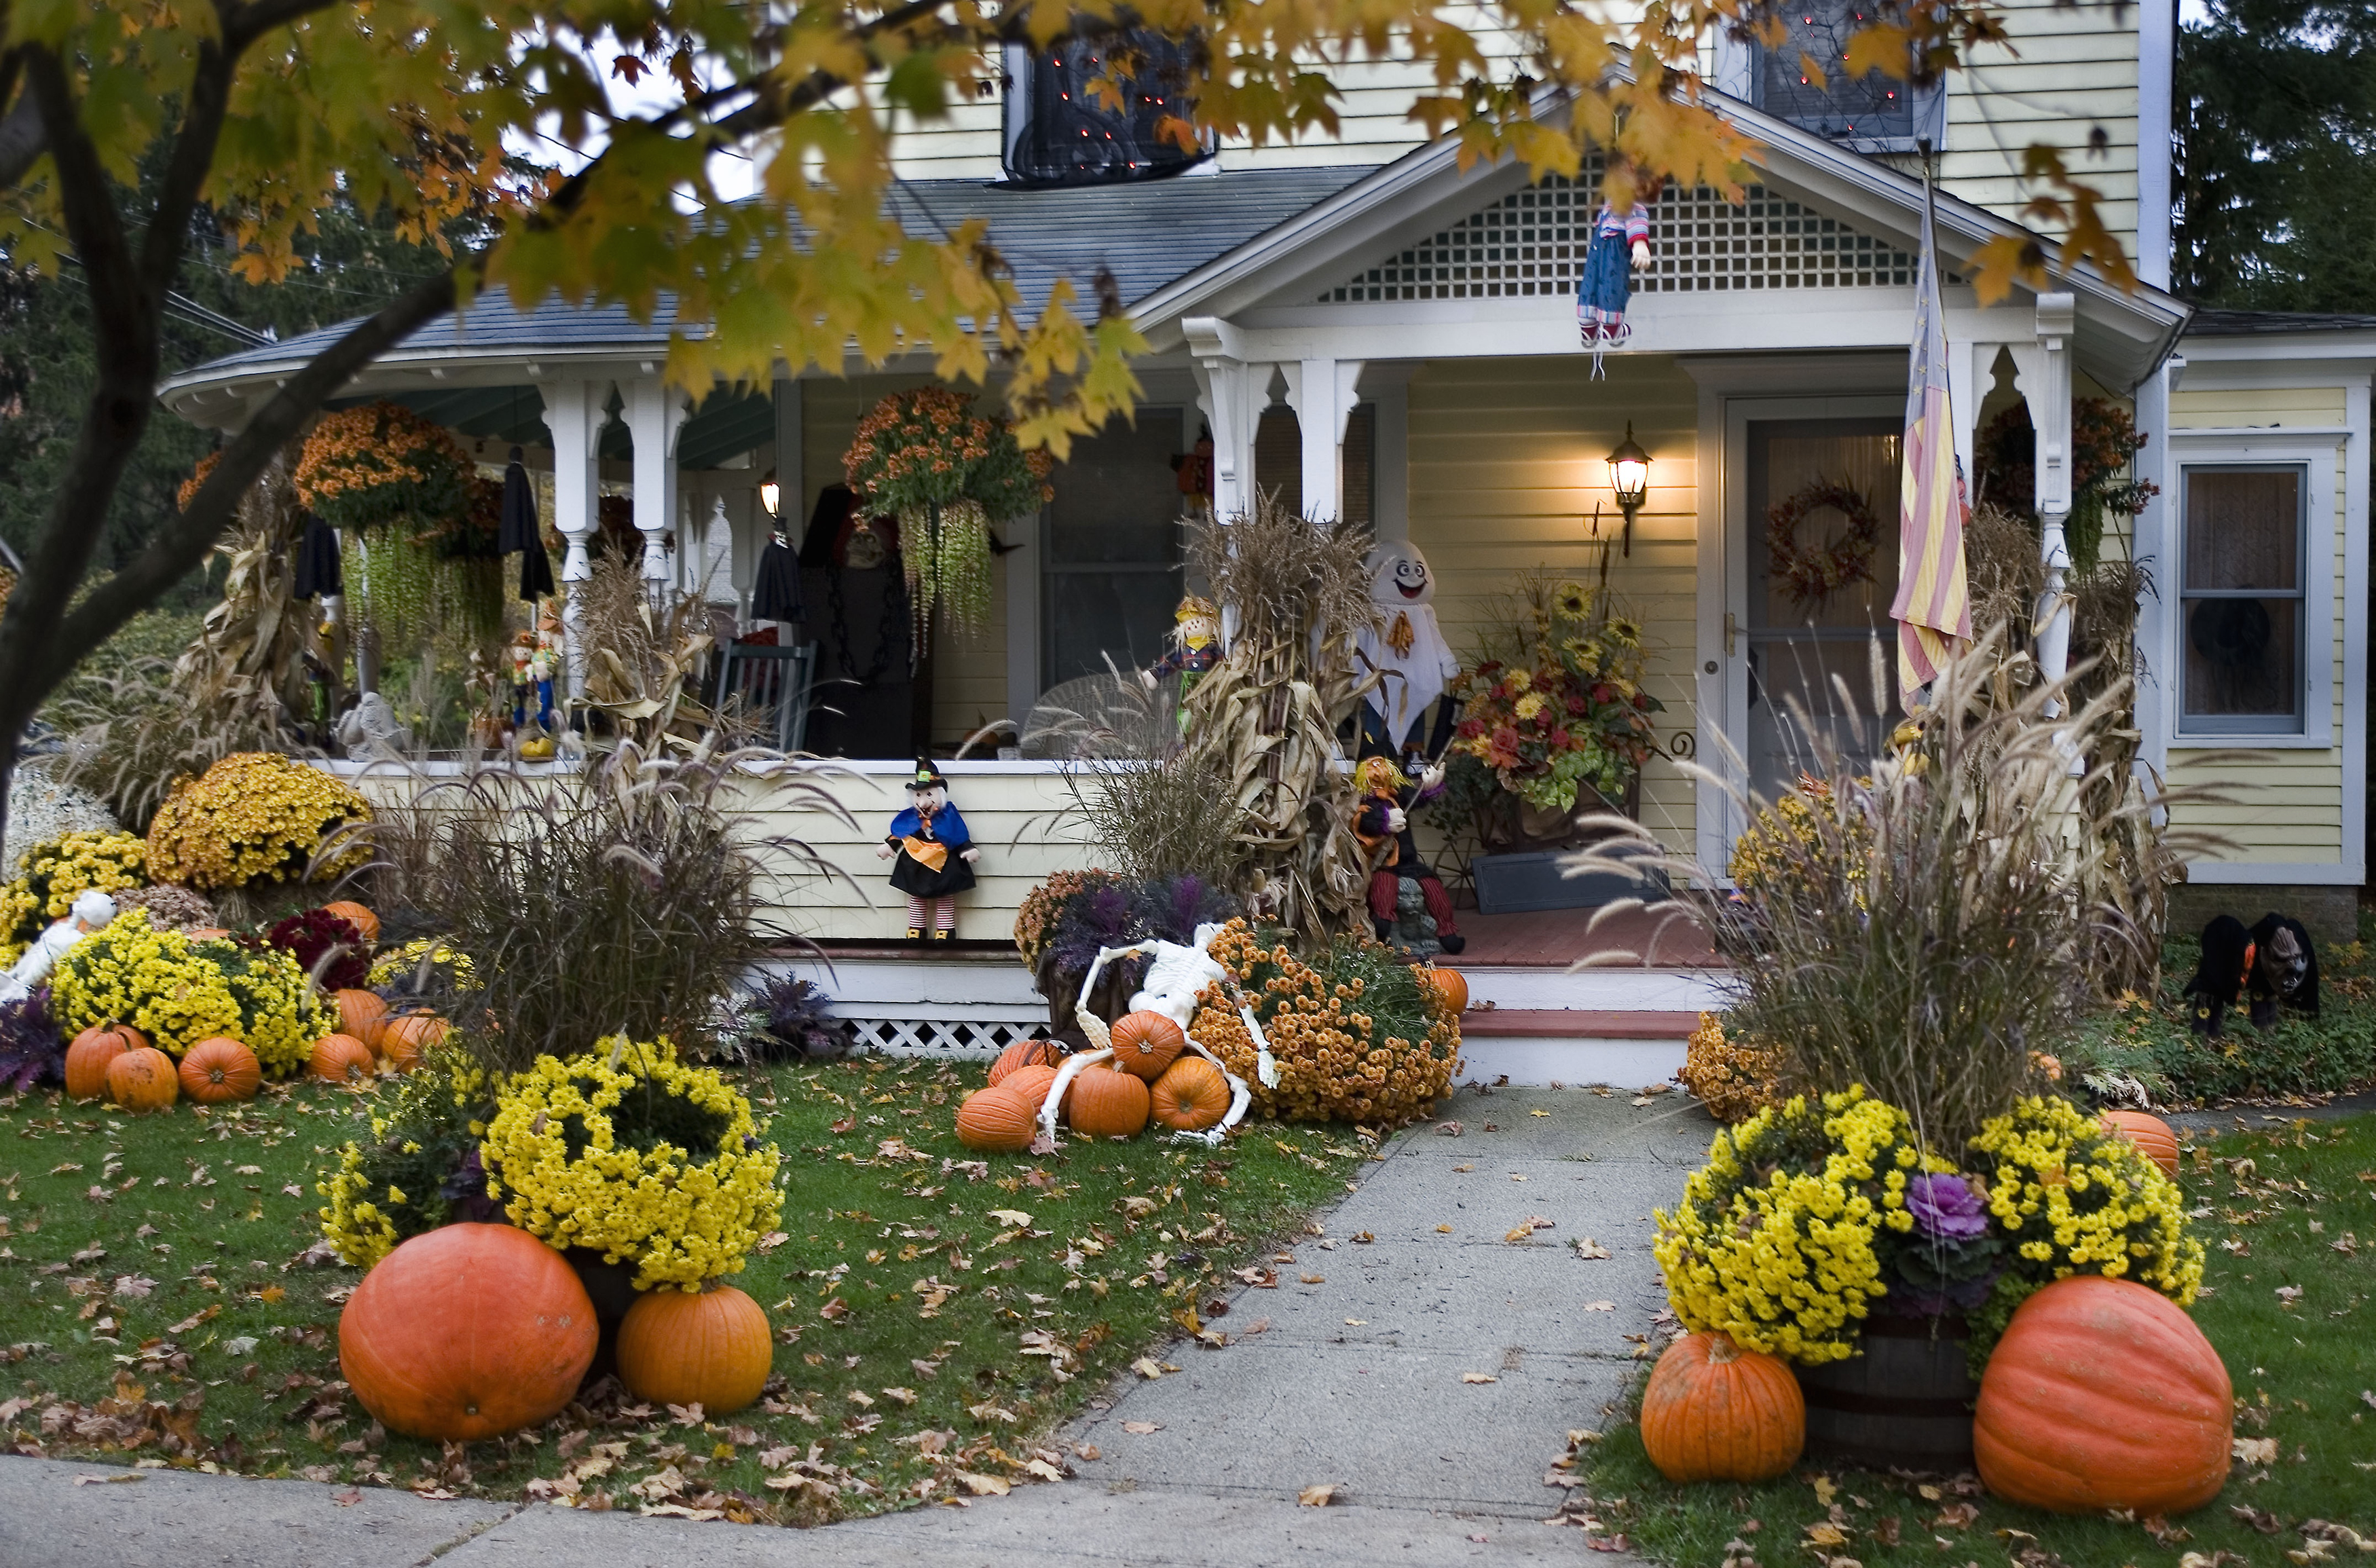 10 Best Outdoor Halloween Decorations - Porch Decor Ideas ... on Patio Decorating Ideas With Lights  id=52341